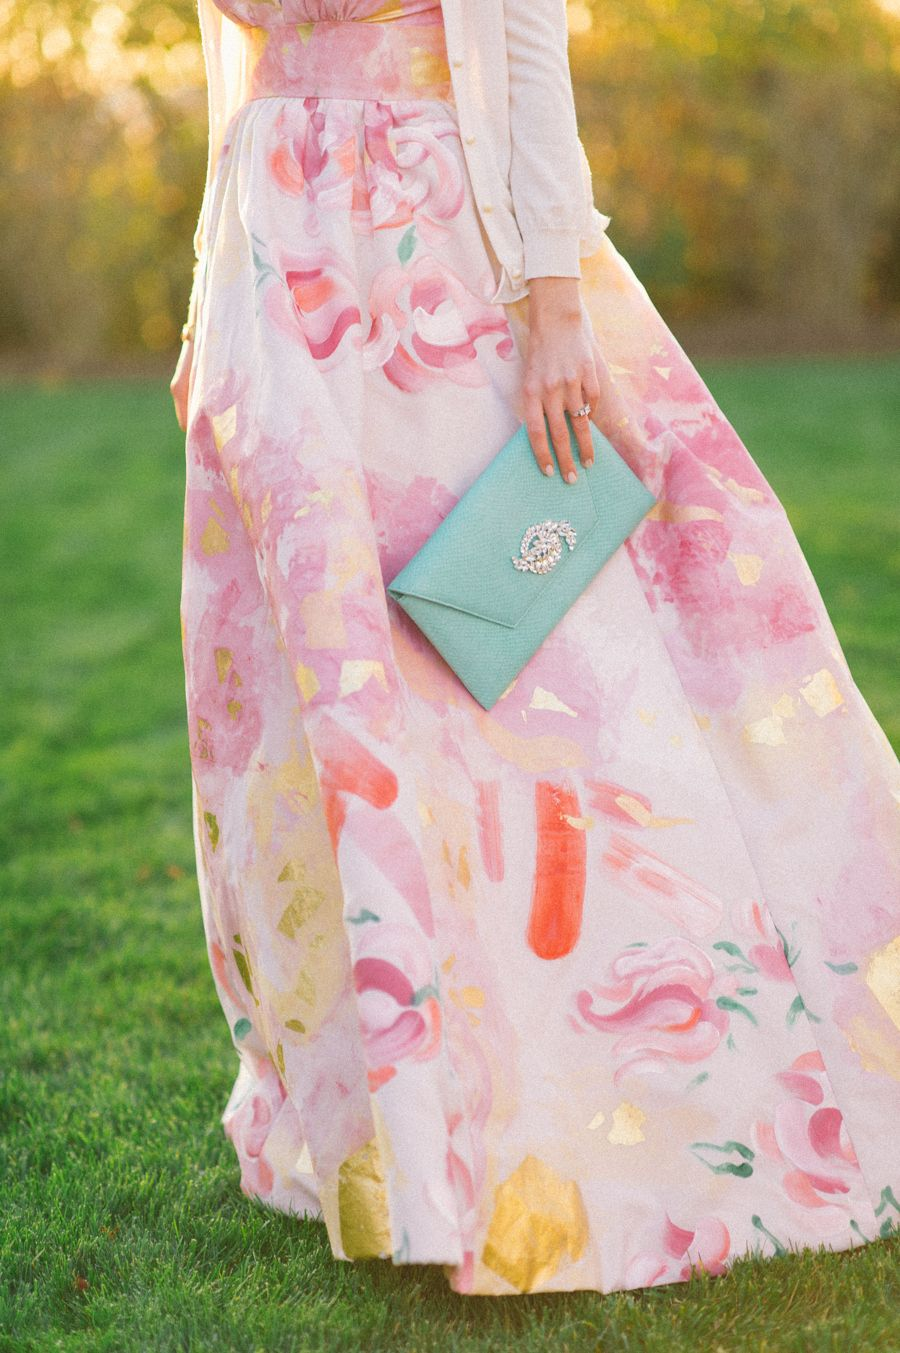 Floral print wedding dresses  Playful Pink and Gold Preppy Bridal Shoot  Bridal shoot Floral and